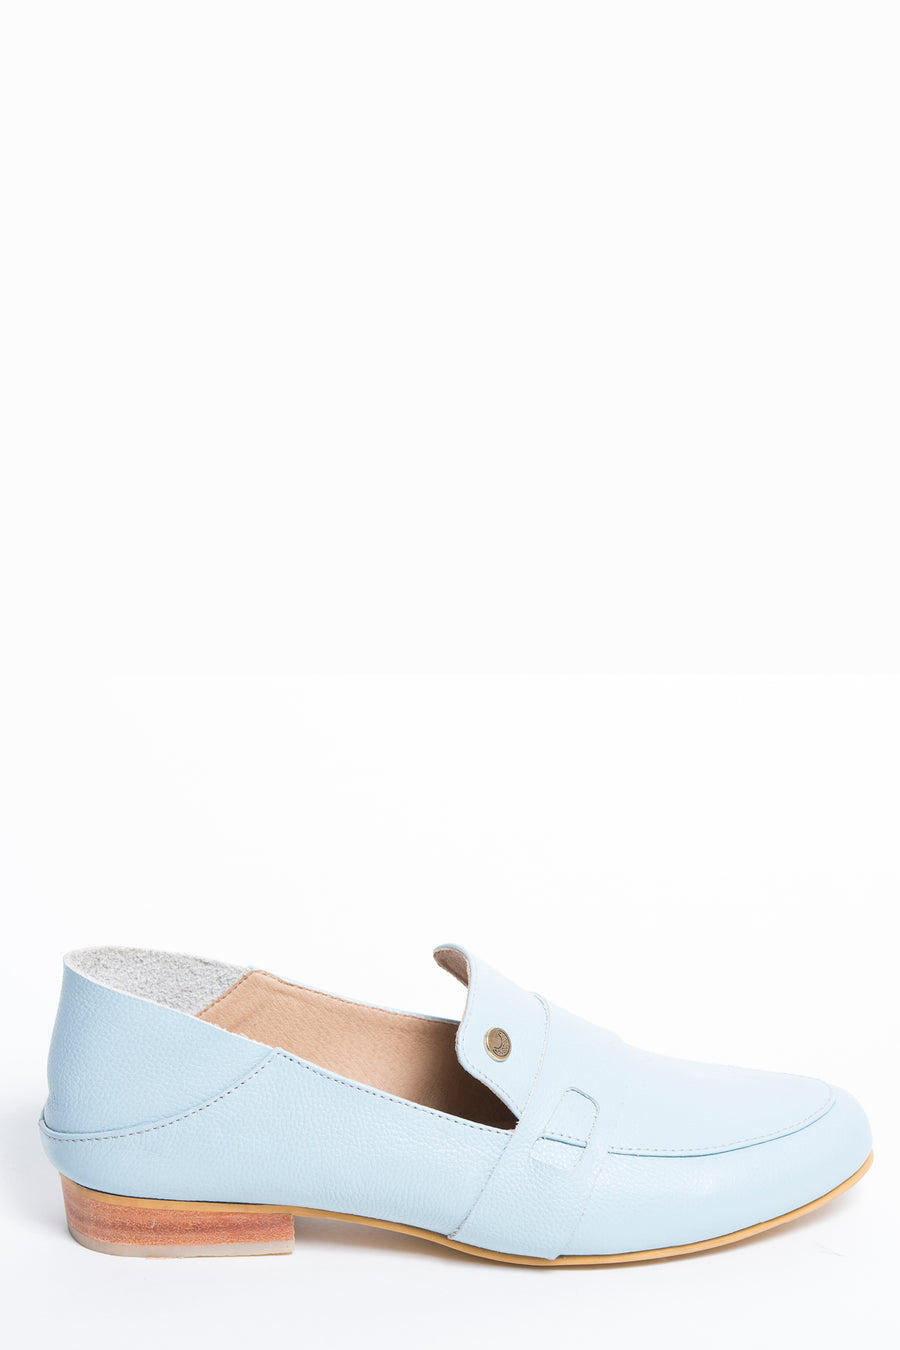 Lis loafer in soft blue leather